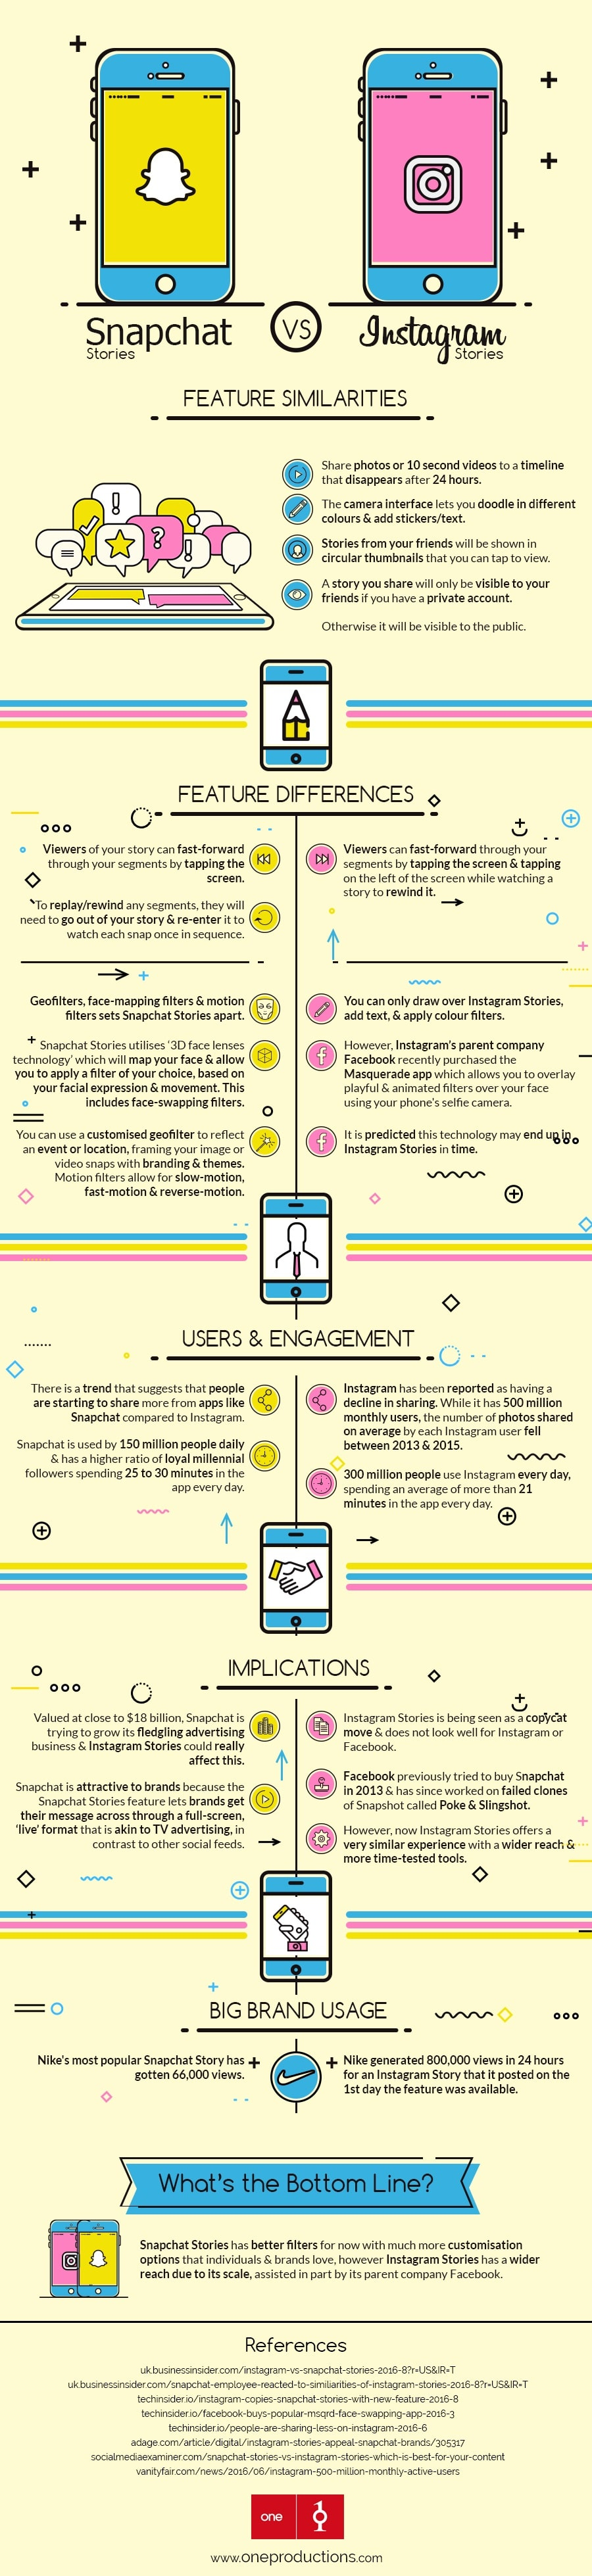 Snapchat Stories versus Instagram Stories | Infographic